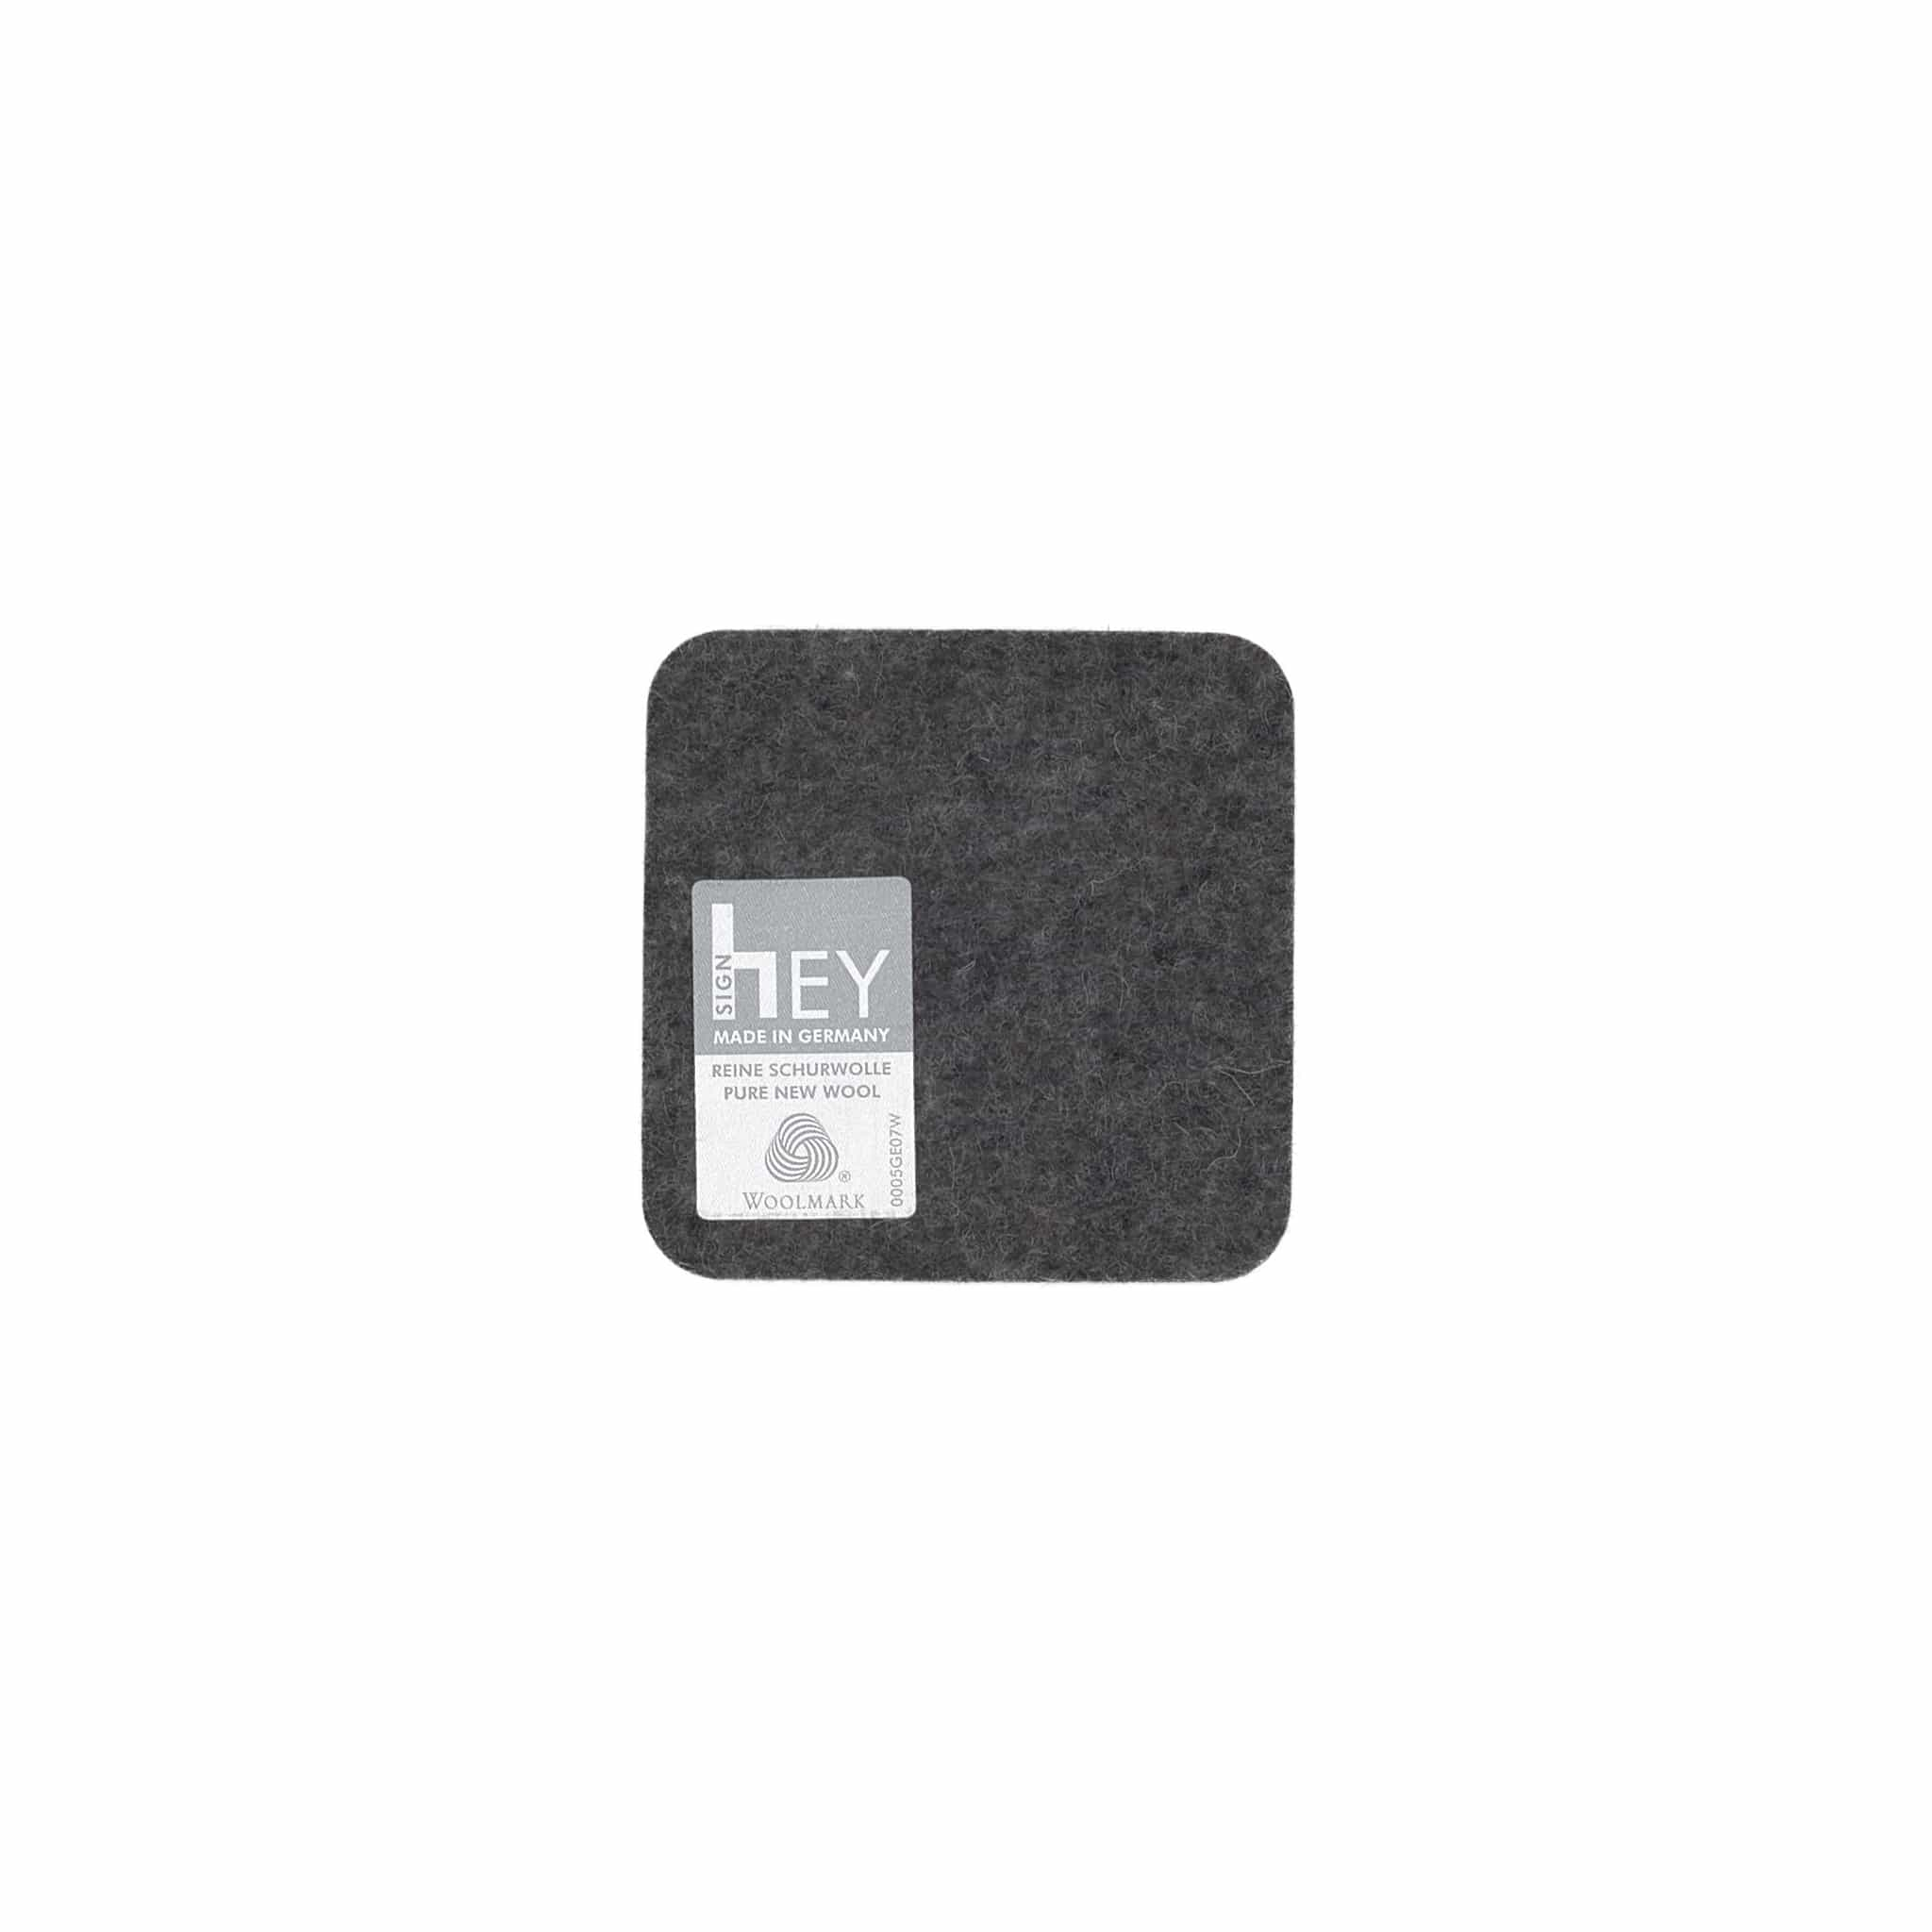 Square Felt Coaster in Charcoal by Hey-Sign 300160901 looking at Back